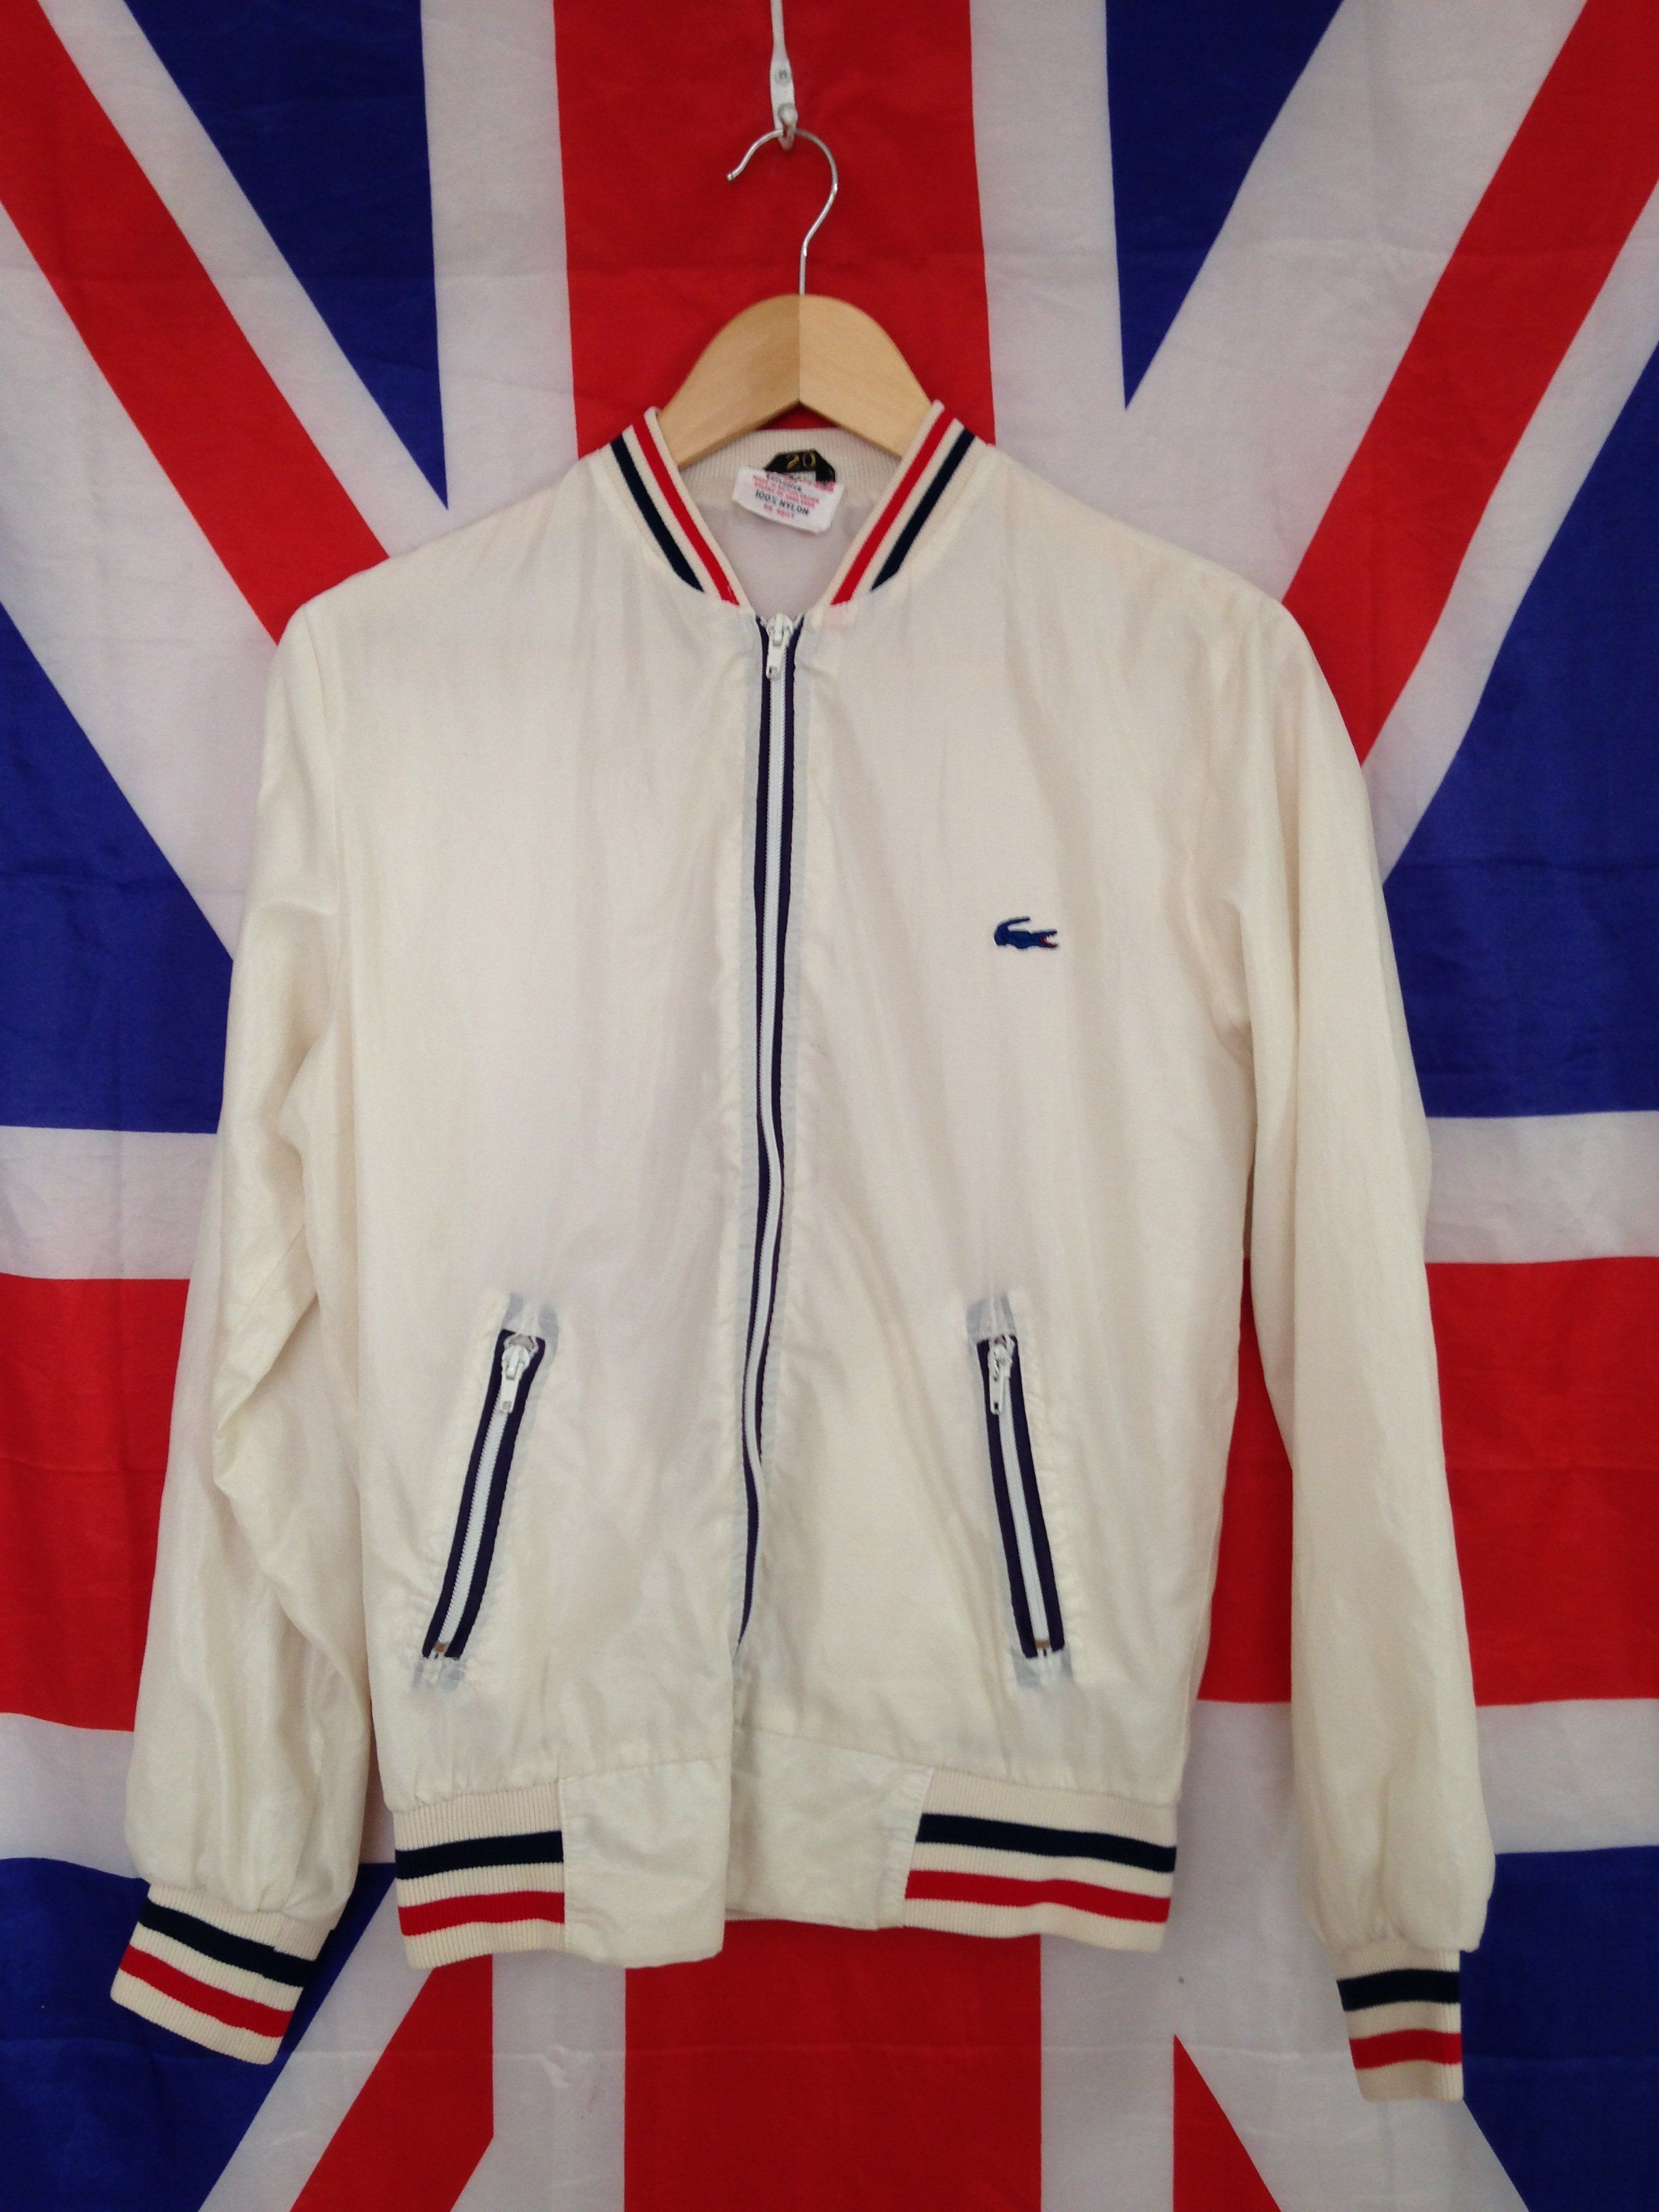 a5211508e08b 80s VINTAGE LACOSTE SHIMMER BOMBER JACKET. REALLY RARE DESIGN IN A SKINNY  XS FIT. TAG READS 20 BUT BEST SUITED FOR A 34 36  CHEST STANDARD XS.